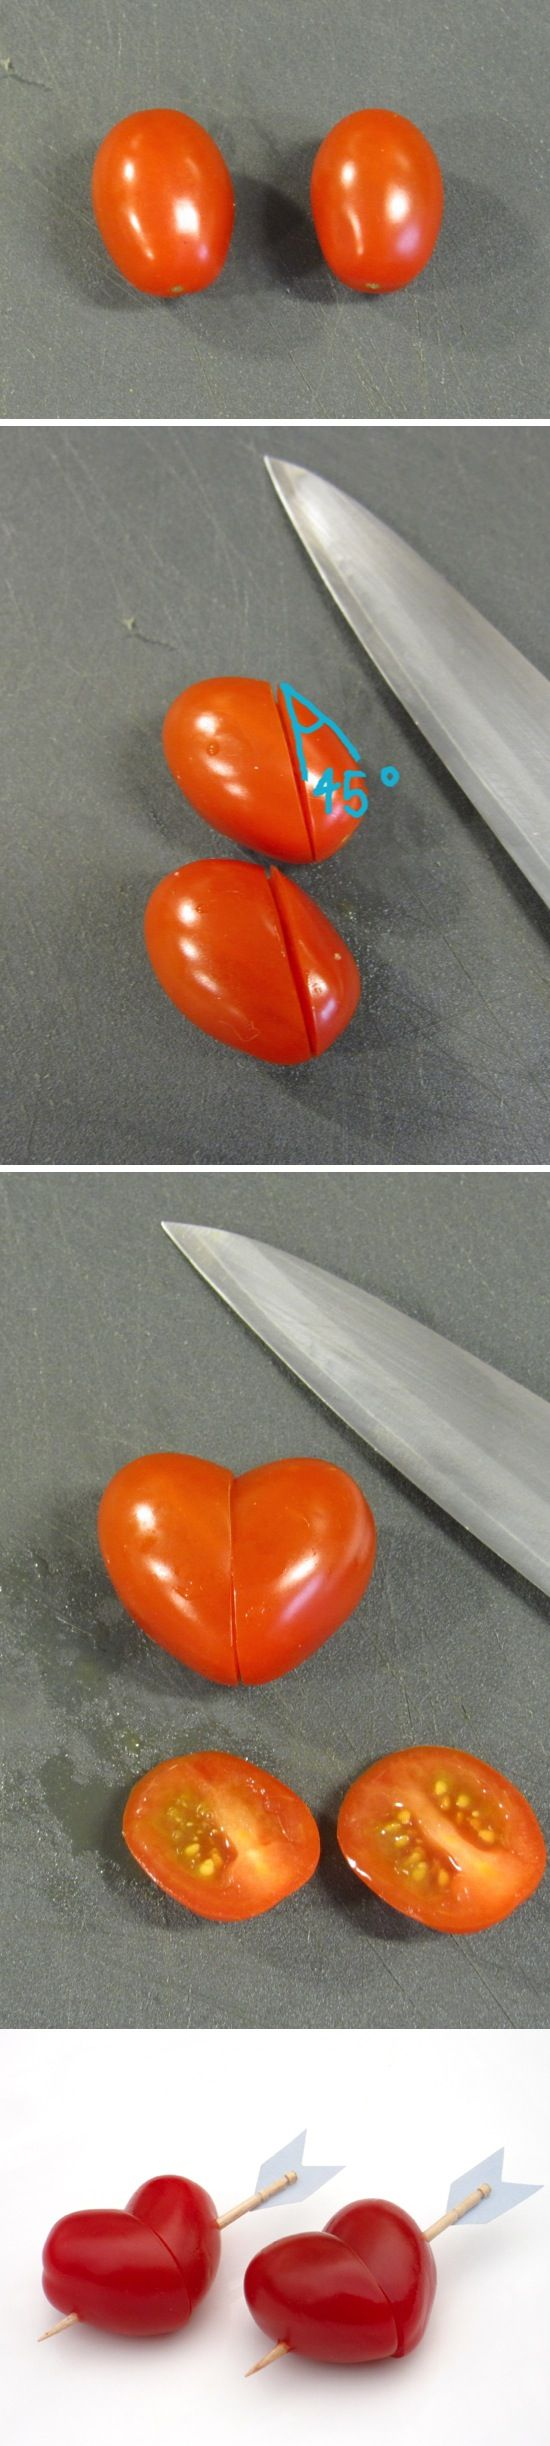 Heart Shaped Cherry Tomatoes by recipebyphoto #Tomatoes #Hearts